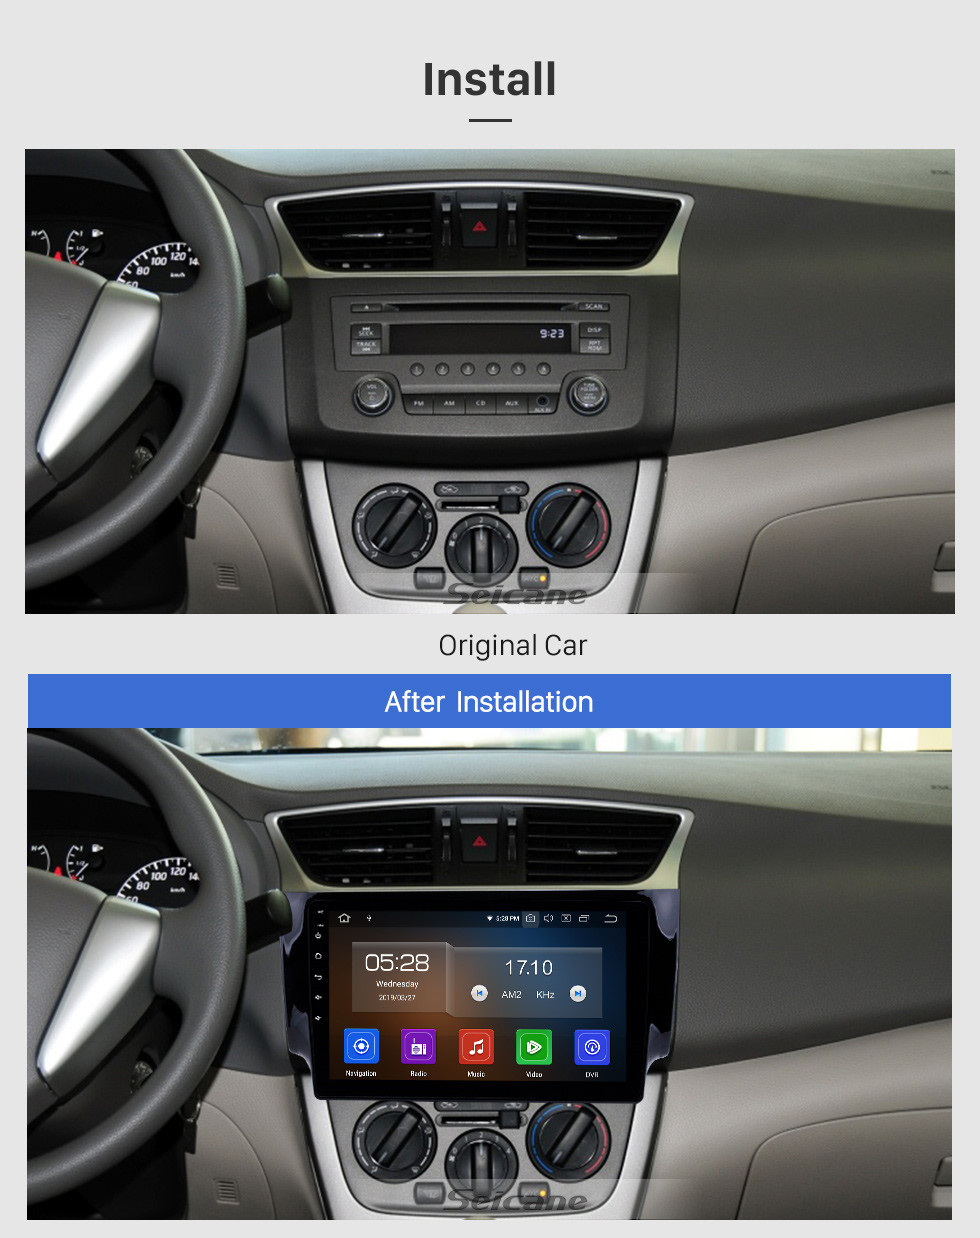 Seicane 10.1 inch HD TouchScreen Android 10.0 Radio GPS Navigation System for 2012 2013 2014 2015 2016 NISSAN SYLPHY Support Bluetooth 3G/4G WiFi TPM OBD2 DVR Backup Camera USB